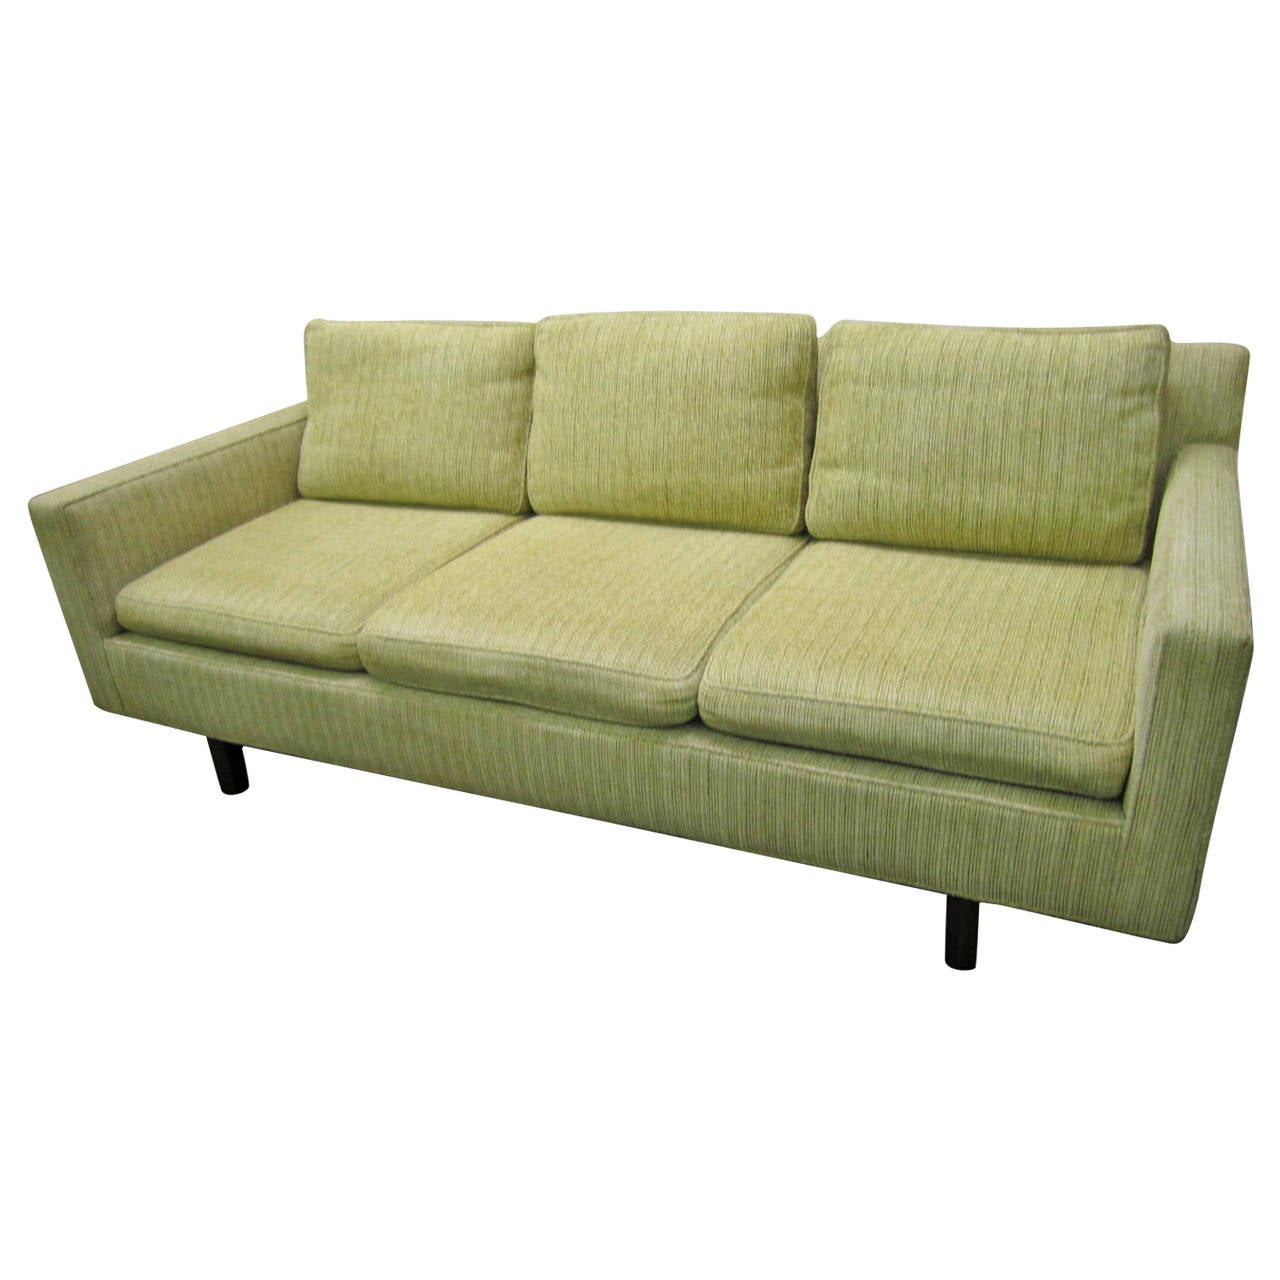 Average Cost To Reupholster A Sofa